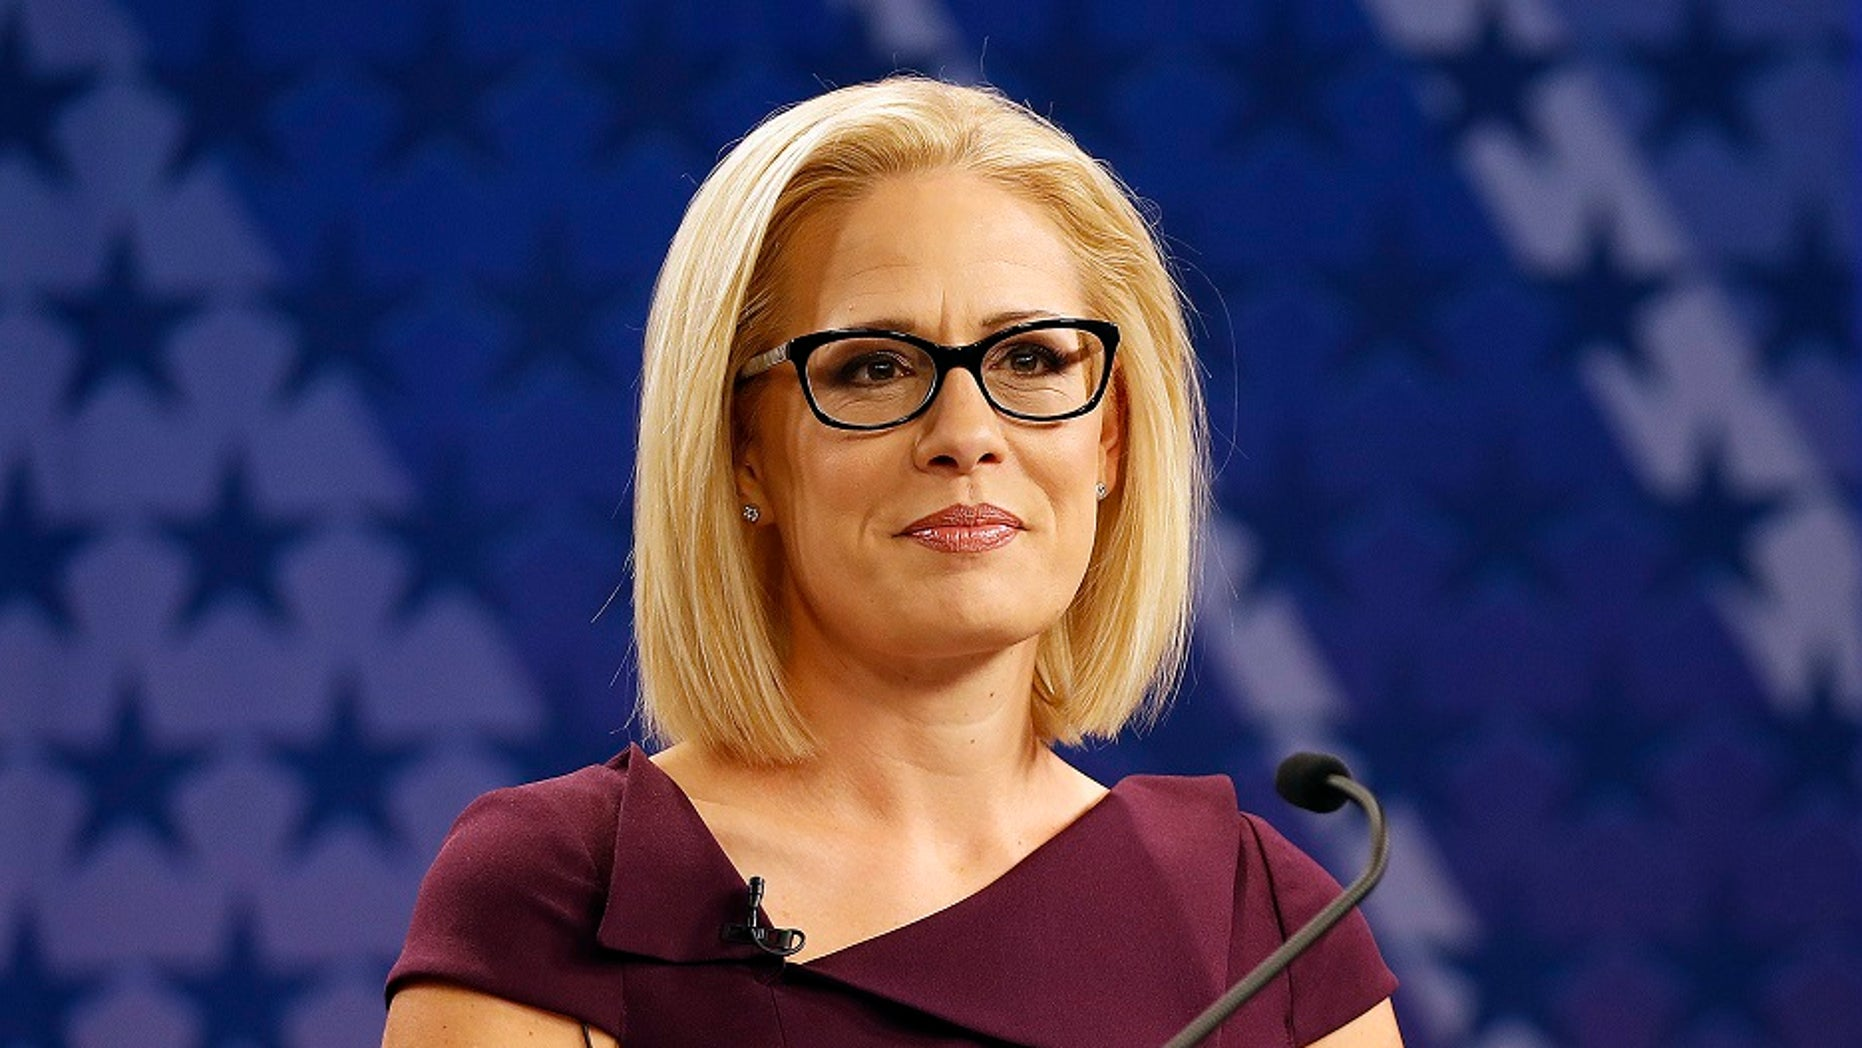 U.S. Rep. Kyrsten Sinema, D-Ariz., goes over the rules in a television studio prior to a televised debate with U.S. Rep. Martha McSally, R-Ariz.